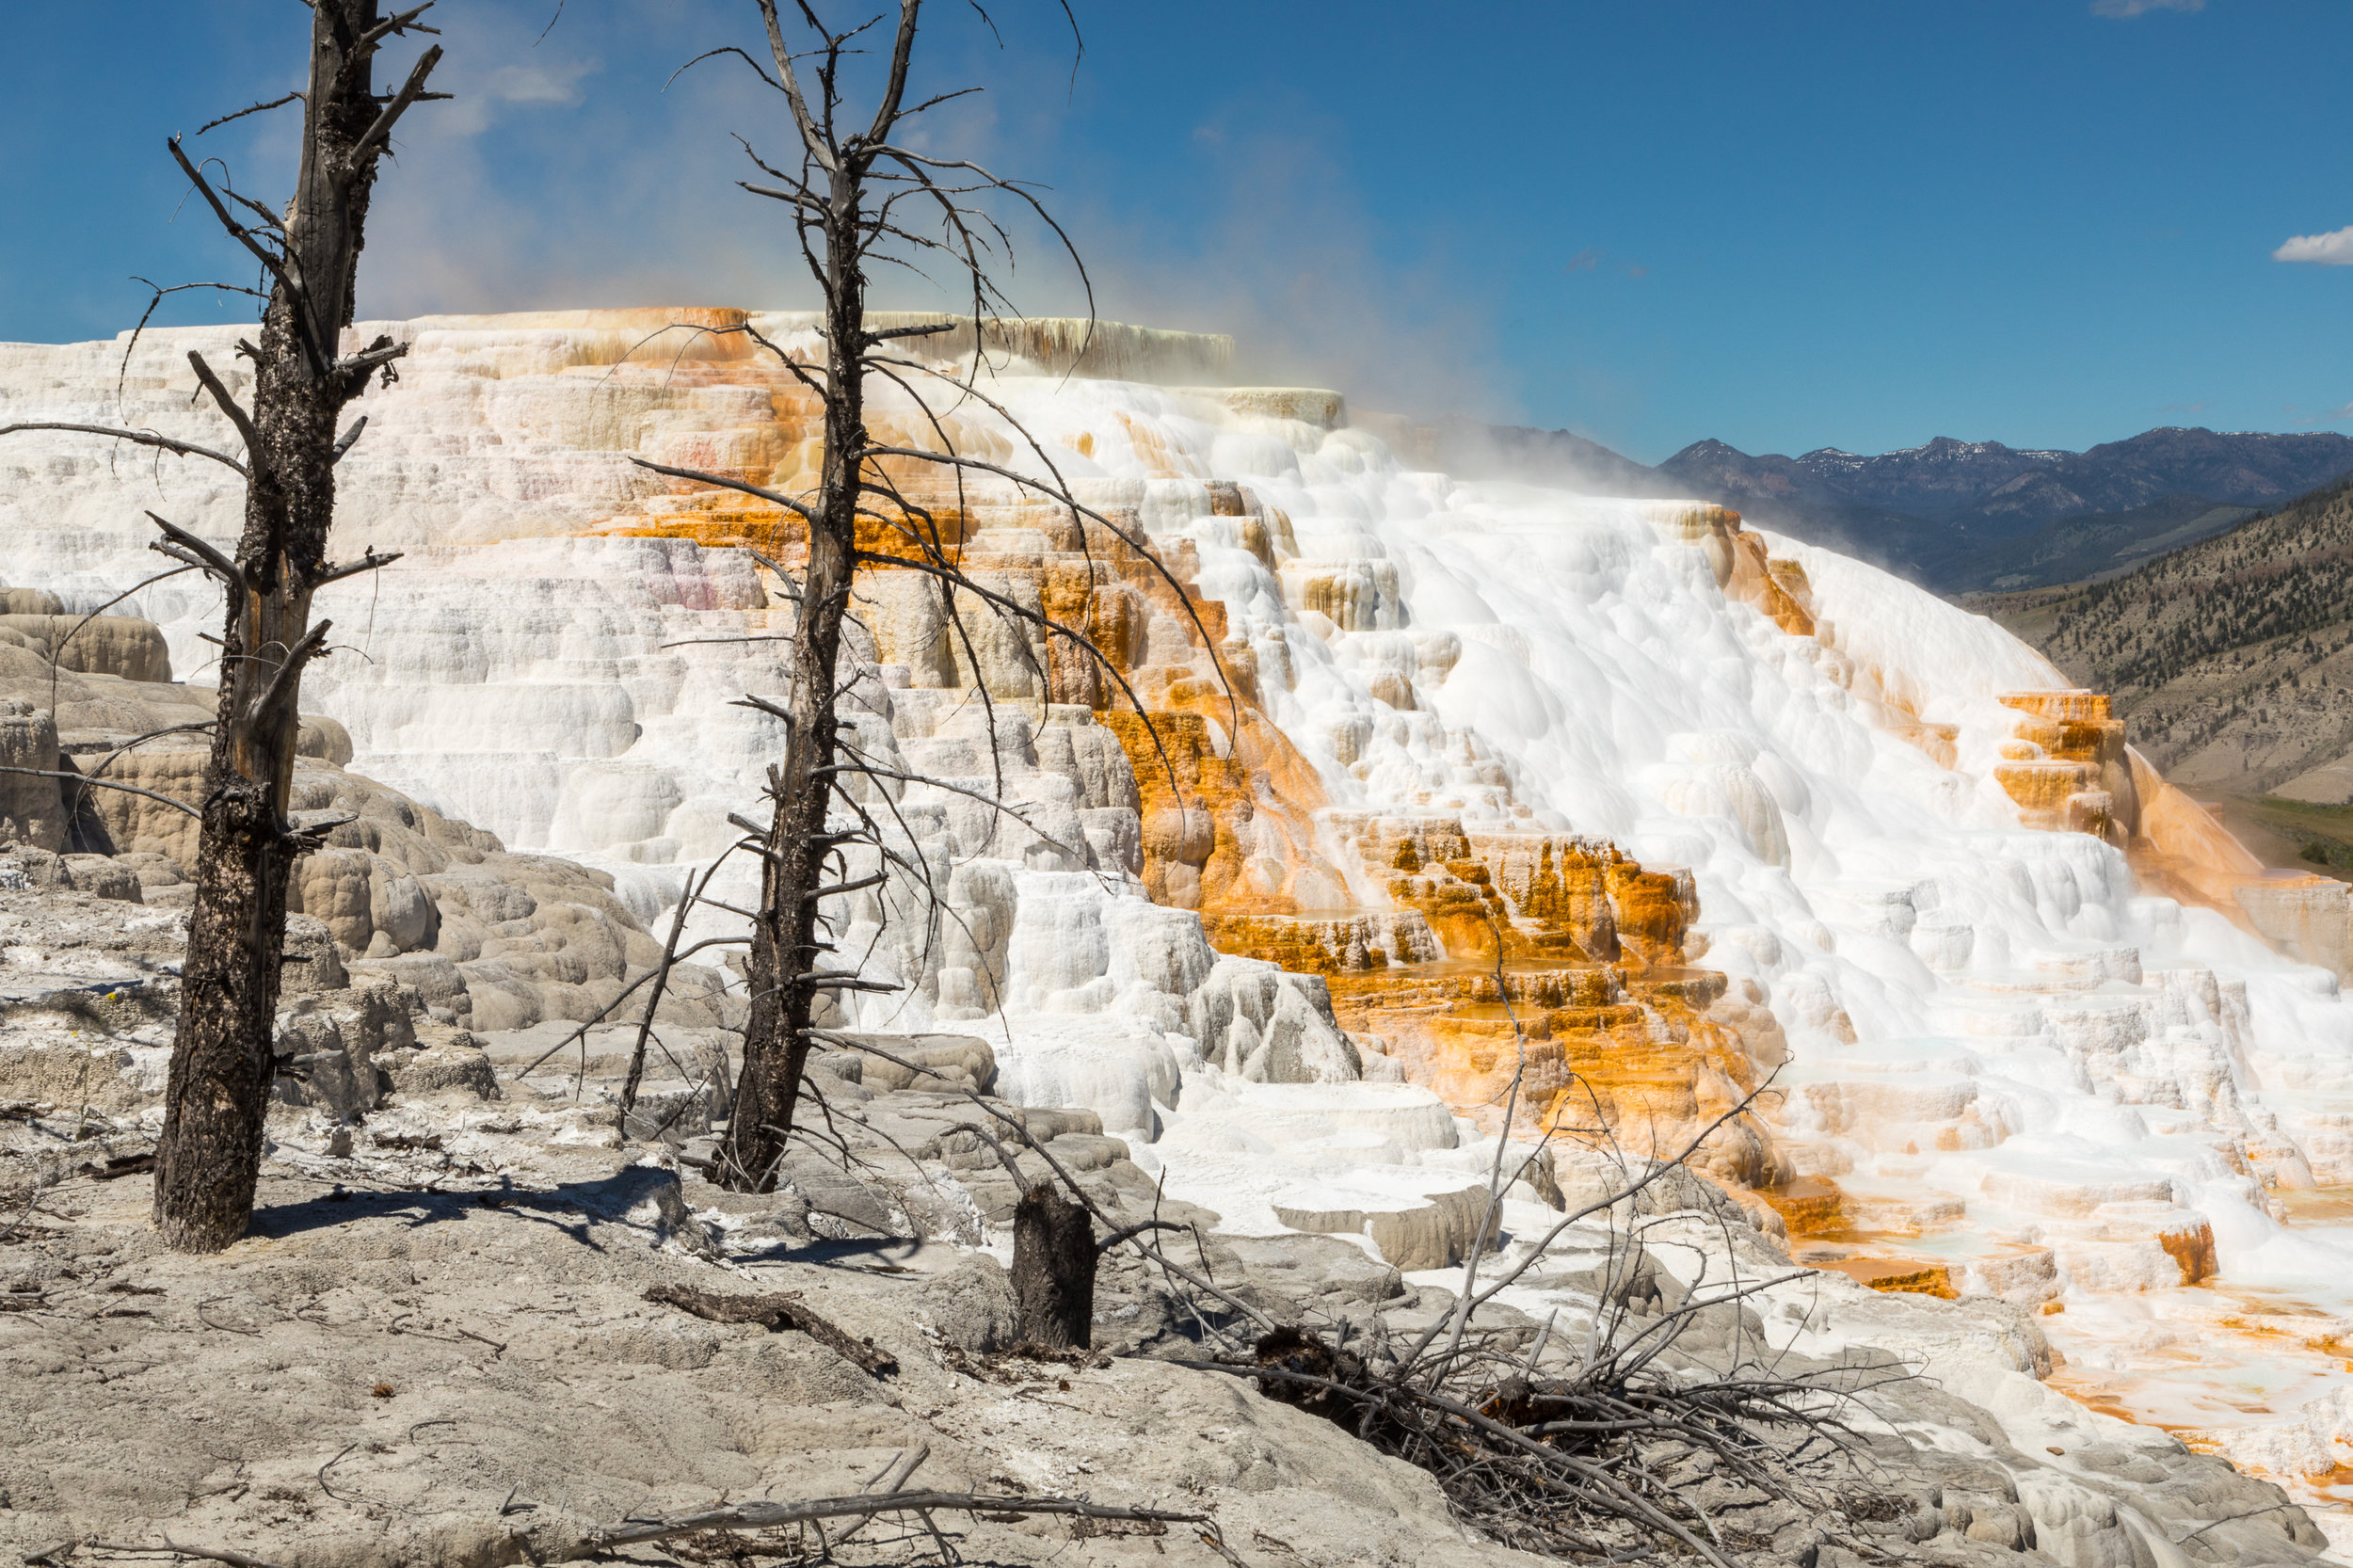 Mammoth Hot Springs, Yellowstone National Park, Image # 7442